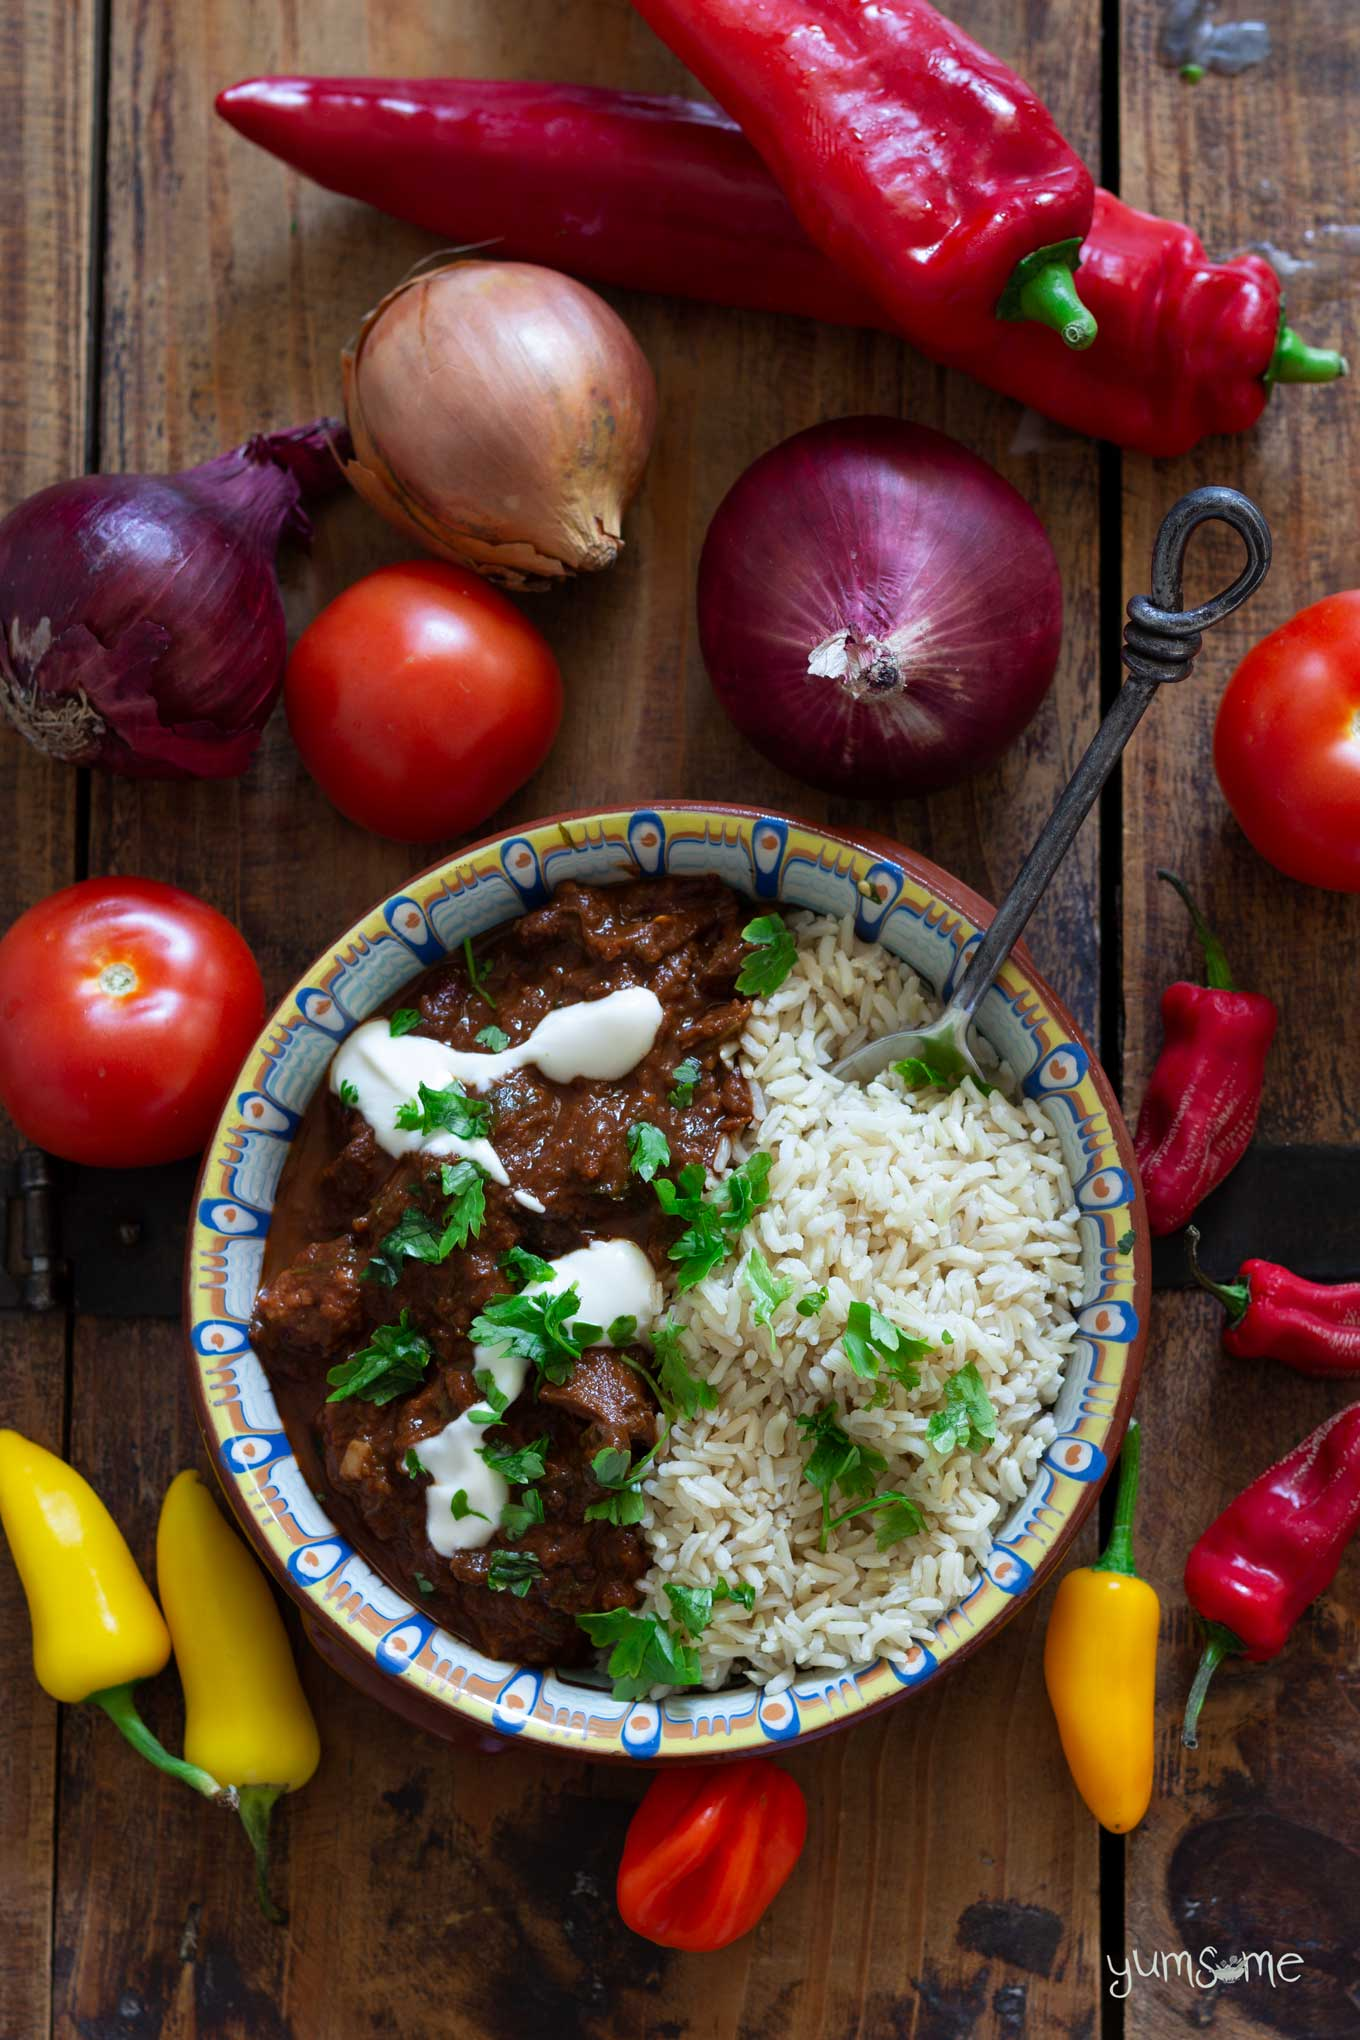 A bowl of chocolate chilli and rice on a wooden table with an assortment of vegetables.